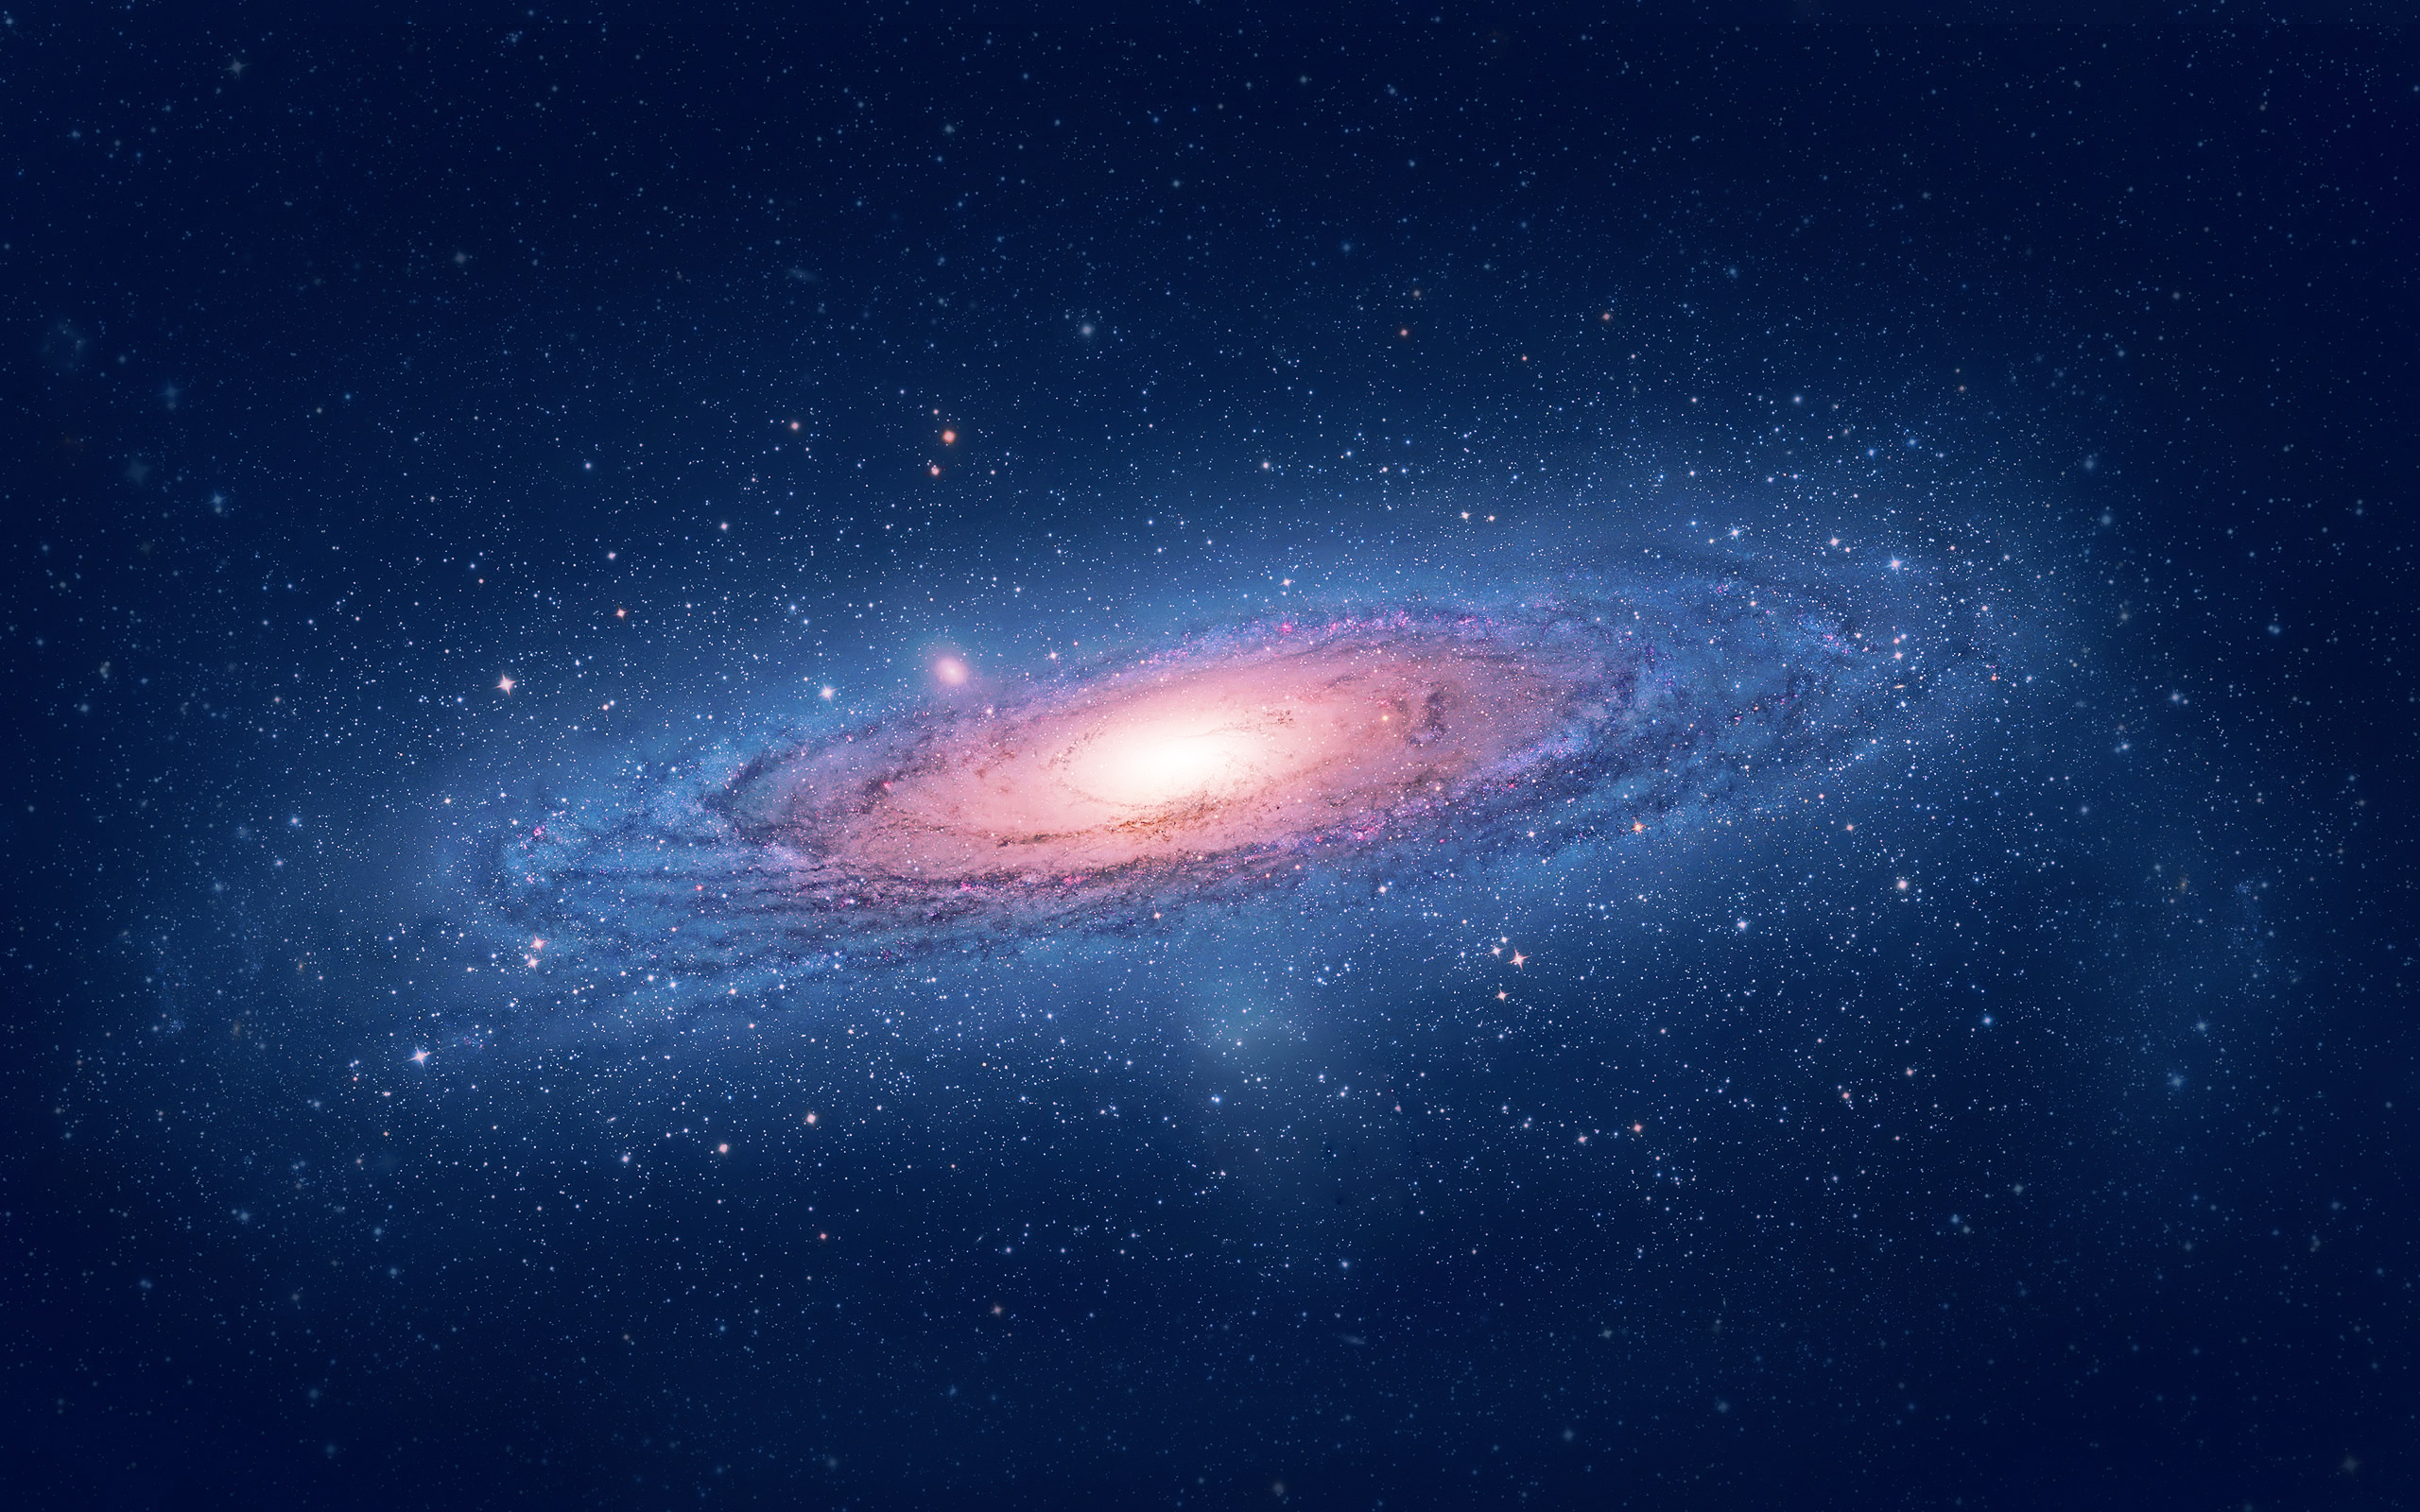 Hd Space Wallpapers For Mac Space Wallpaper 2560x1600